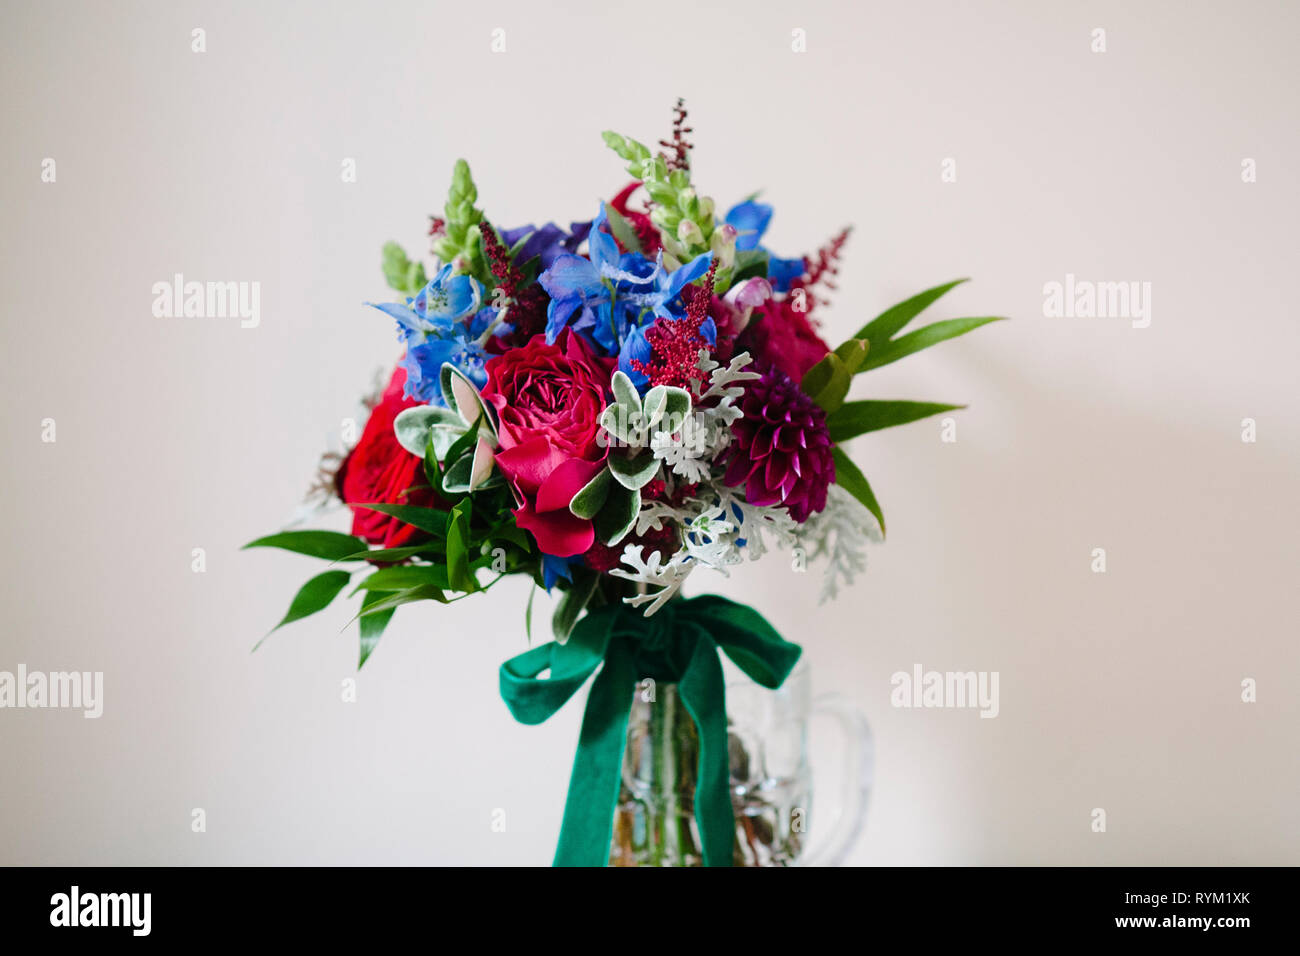 A vibrant colourful wedding flower bouquet on a plain background - Stock Image